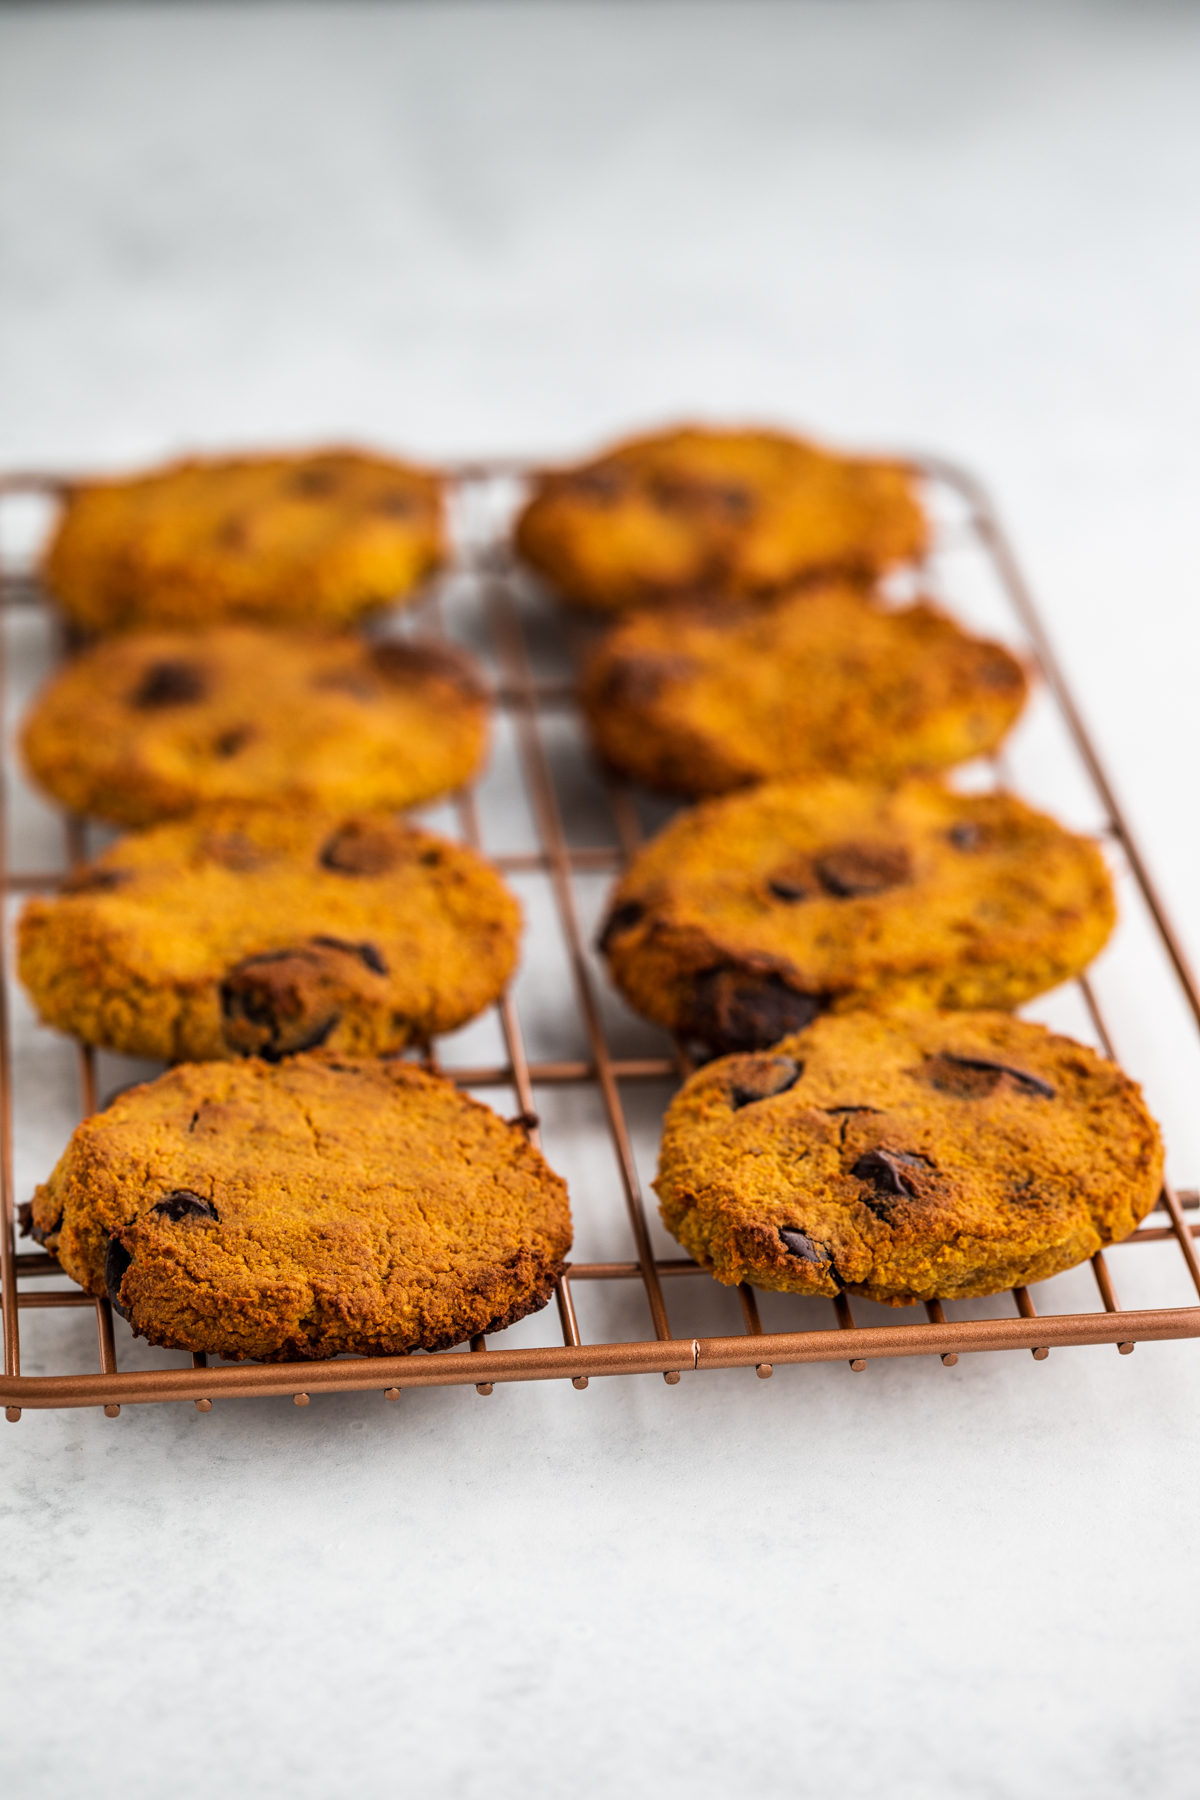 Sweet potato cookies on a rose gold cooling rack on a white background